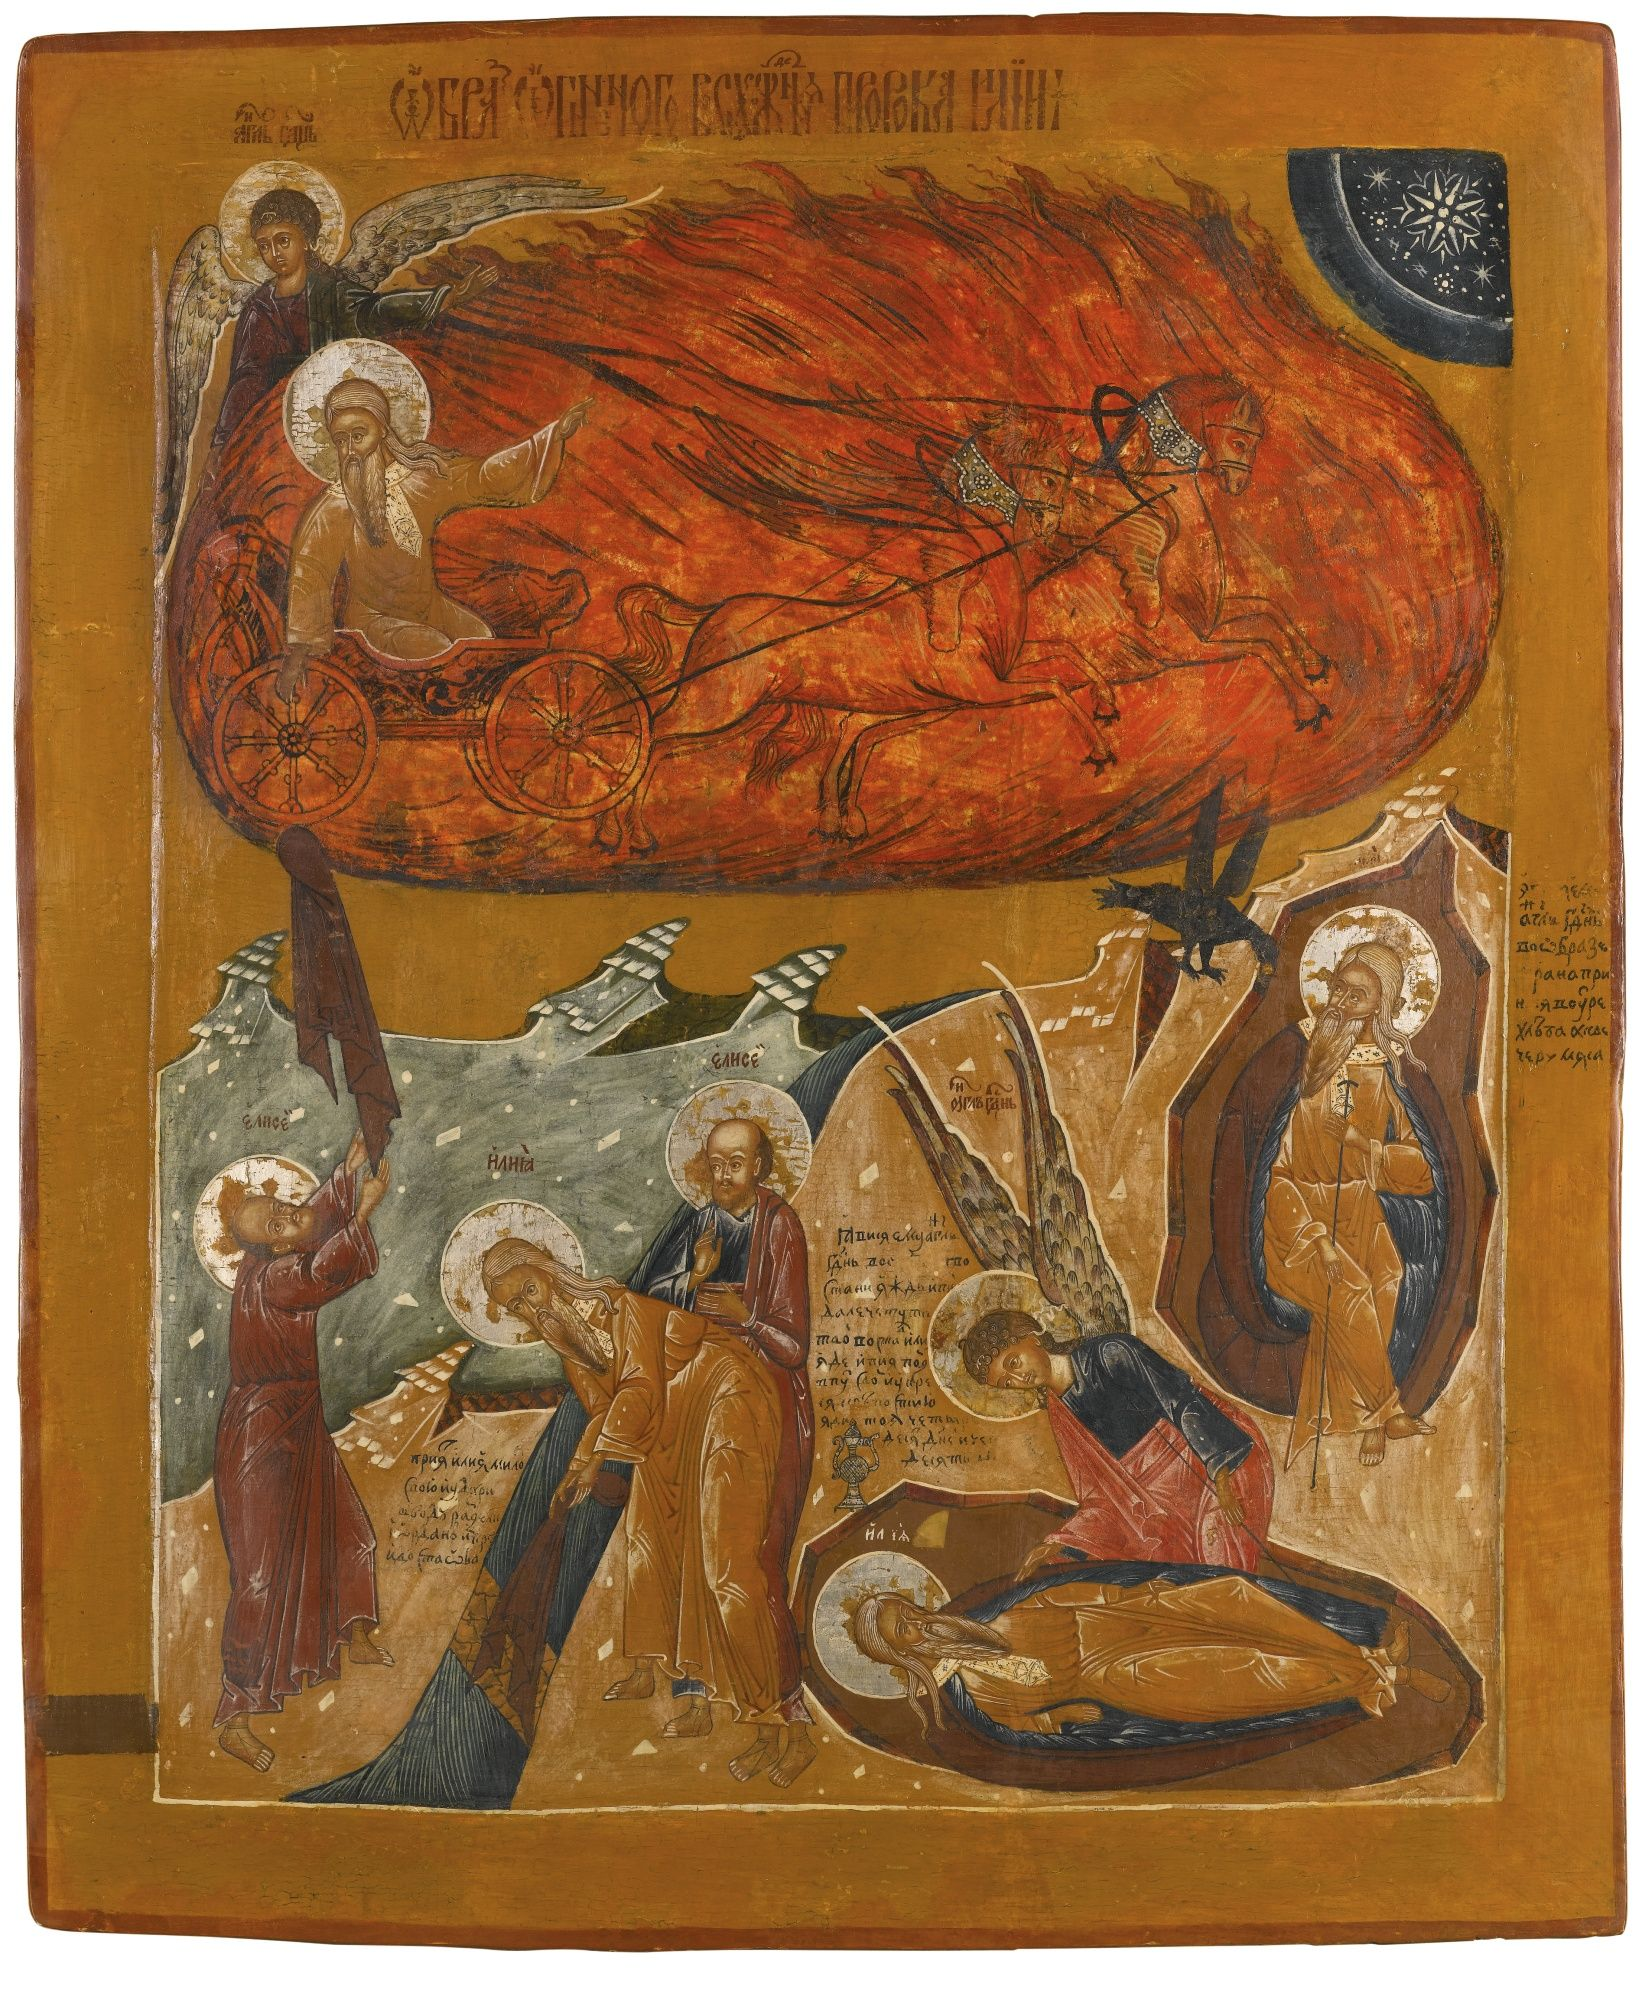 Arte Bizantina Na Pintura Fiery Ascension Of The Prophet Elijah Circa 1700 ícones